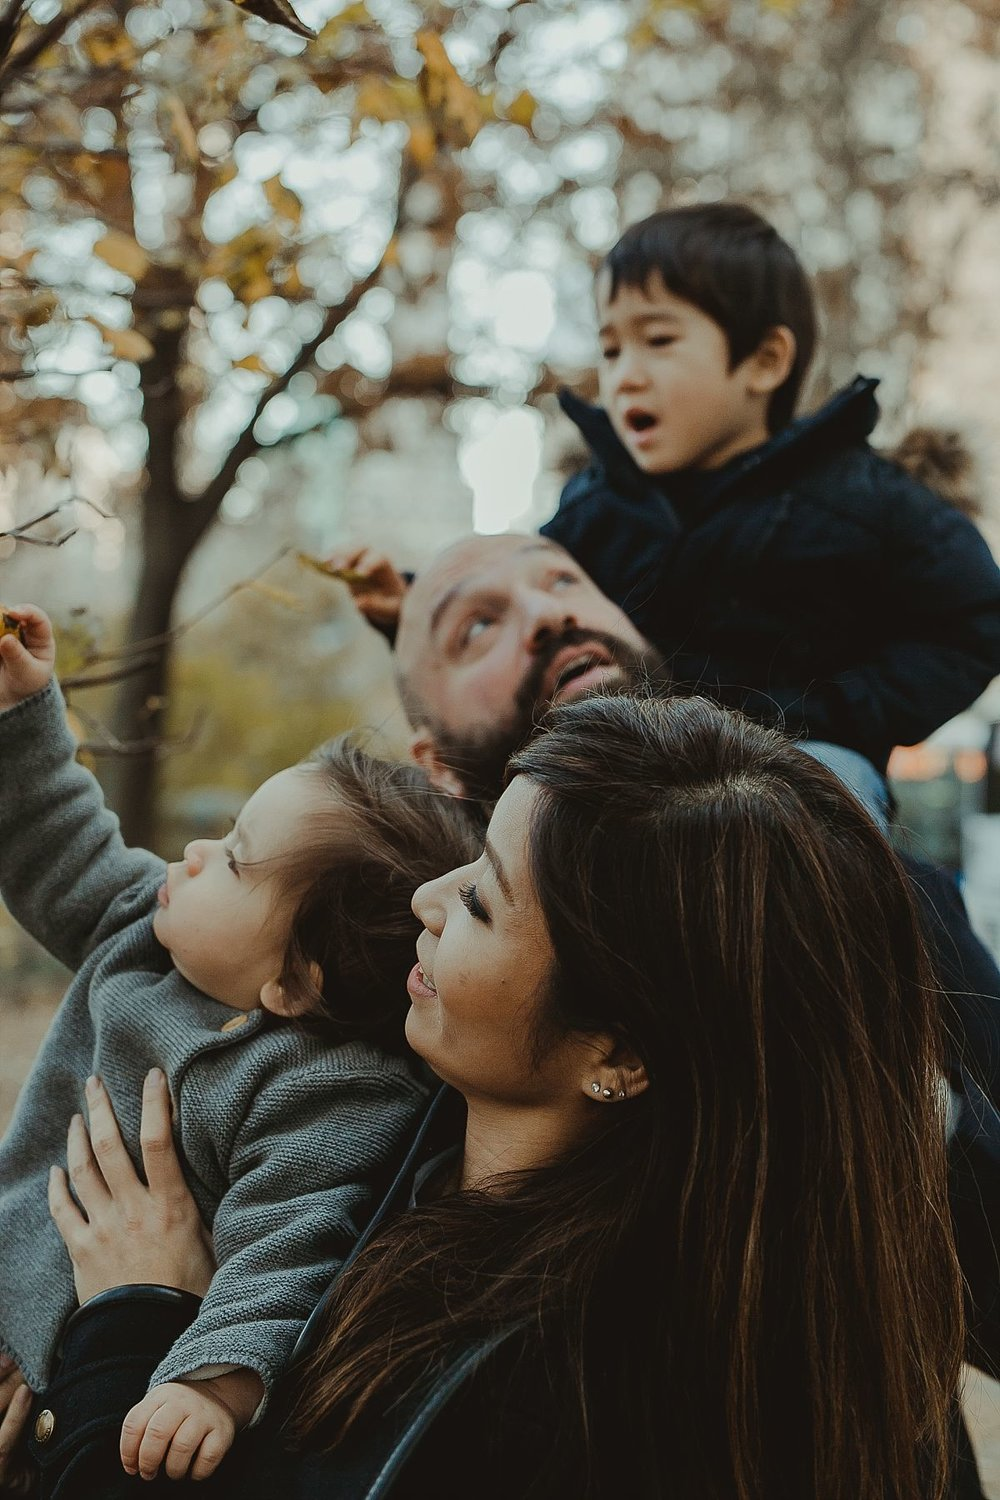 family playing with trees at the bottom of central park on chilly winters day. photo by nyc family photographer krystil mcdowall